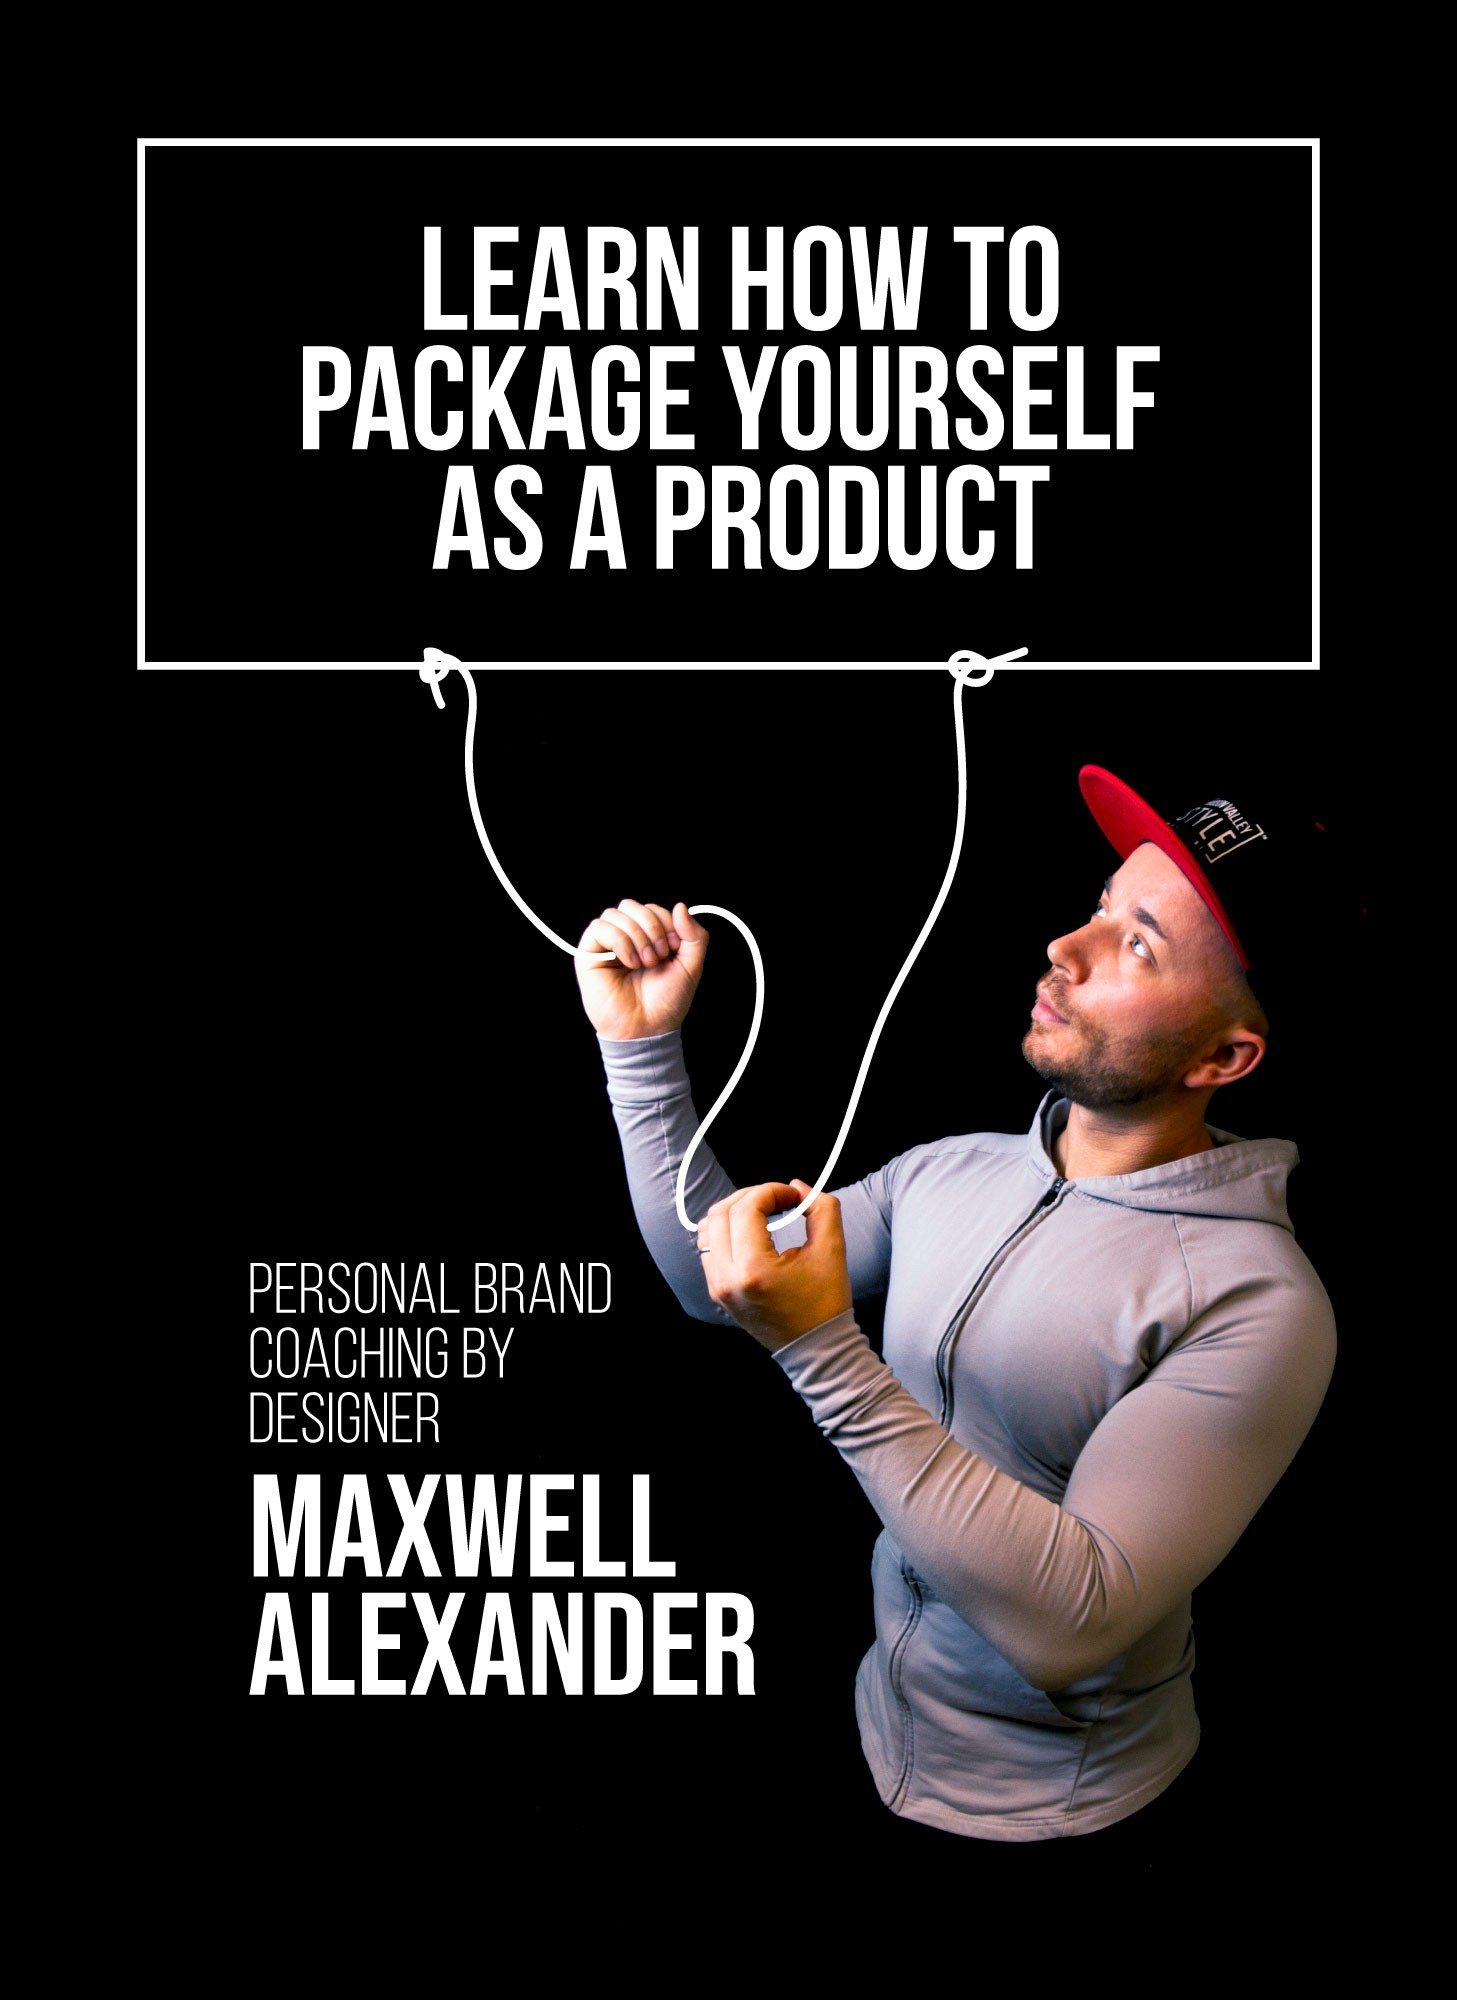 Learn How to Package Yourself as a Product - Personal Branding Bootcamp by Maxwell Alexander